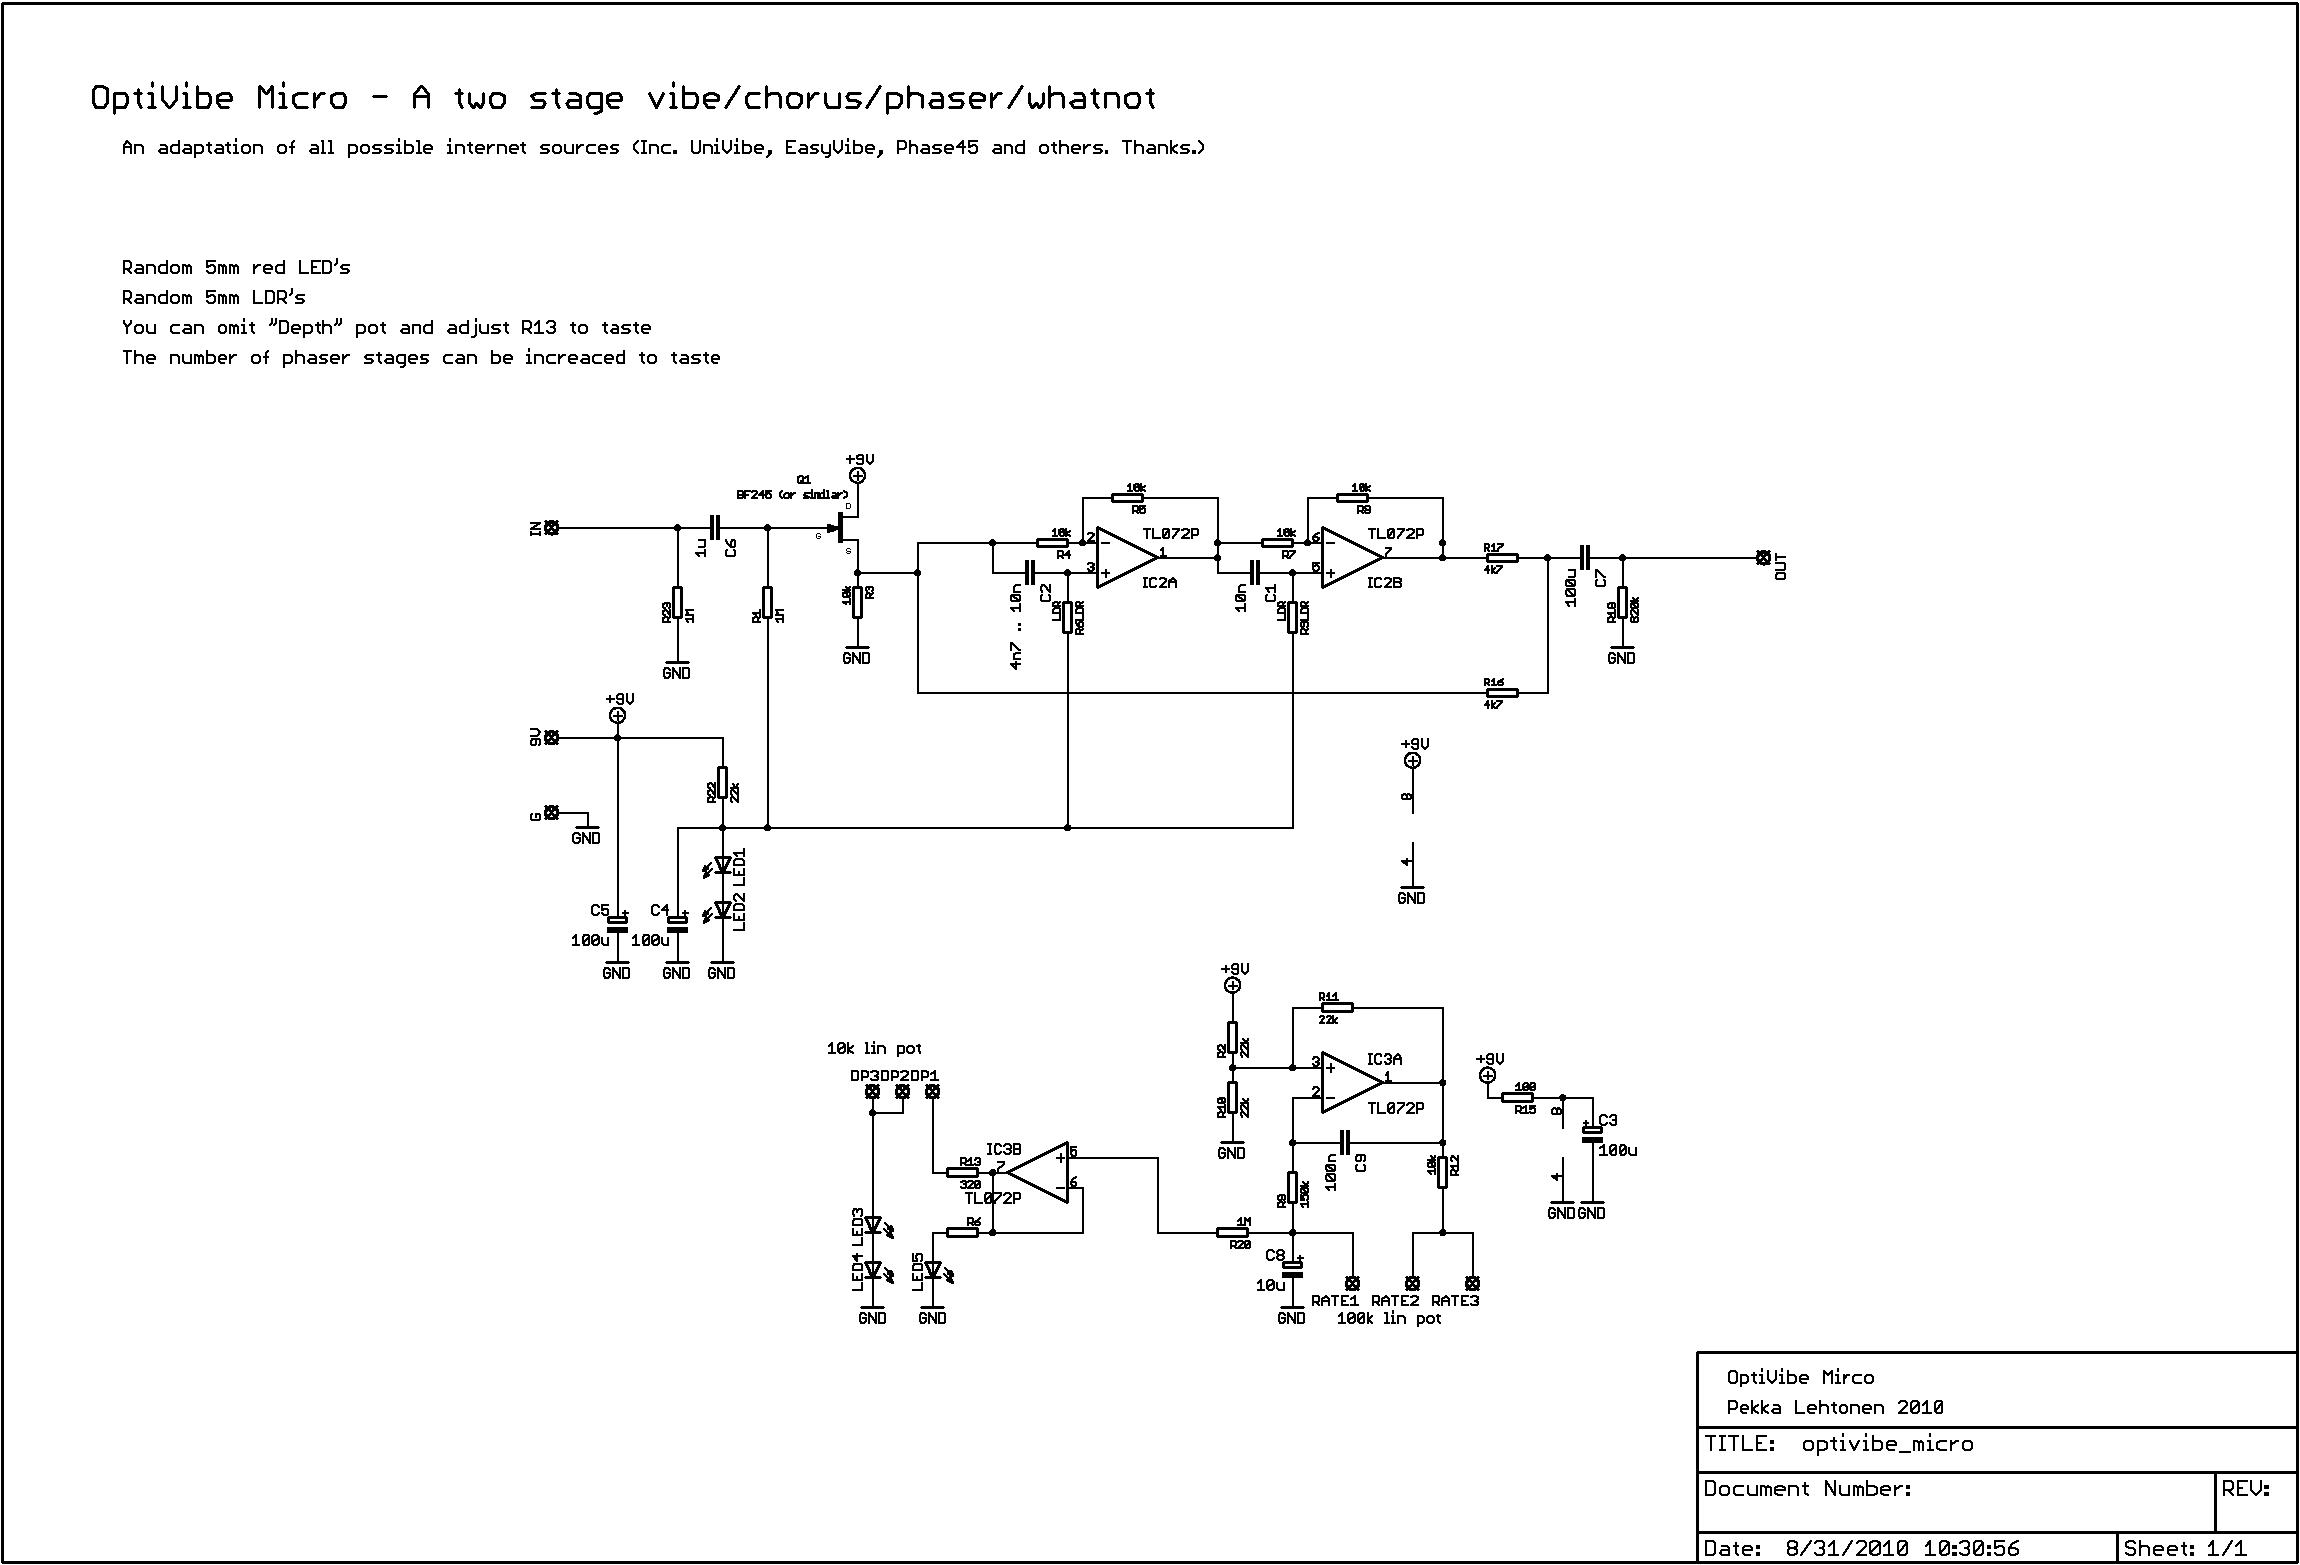 Gk 4x12 Speaker Wiring Diagram - Electrical Wiring Diagram • Gk X Speaker Wiring Diagram on wireless speaker diagram, amp to speaker diagram, small speaker diagram, pro audio speaker diagram, flat speaker diagram, dynamic speaker diagram, parallel series speaker diagram, lound speaker diagram, waves from speaker diagram, parts of a speaker diagram, celstion com speakers speaker diagram, guitar amp speaker diagram, moving coil speaker diagram, car speaker diagram,